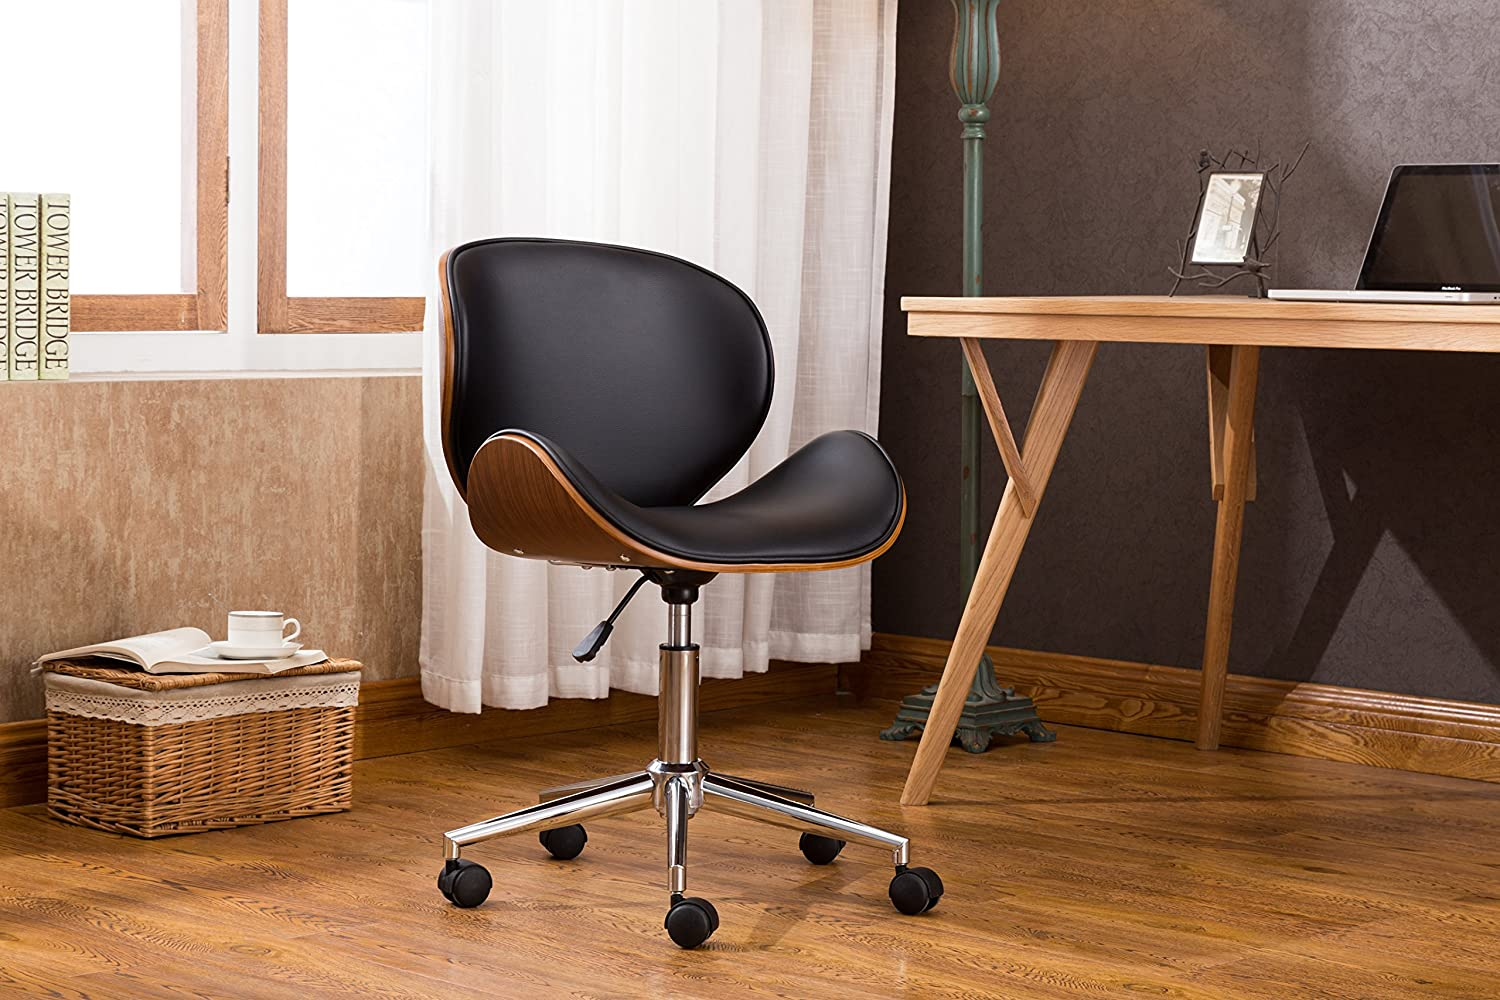 Porthos Home Sedona Office Chair with Instant Height Adjustment, 360° Swivel, Roller Caster Wheels, Bentwood Seat and Back, and PU Leather Upholstery, One Size, Black